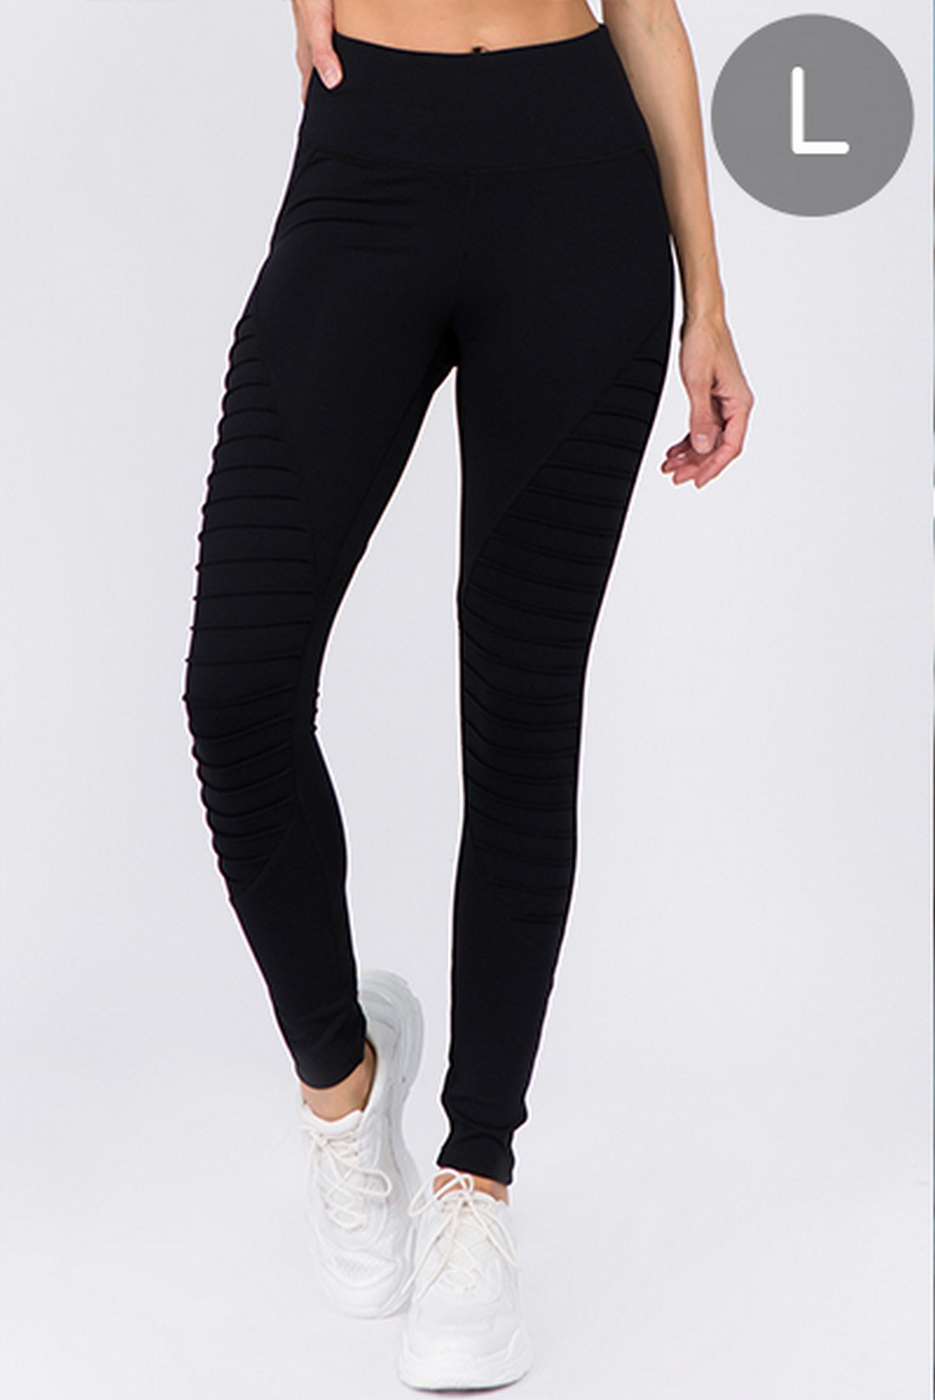 Active High Rise Moto Legging - orangeshine.com